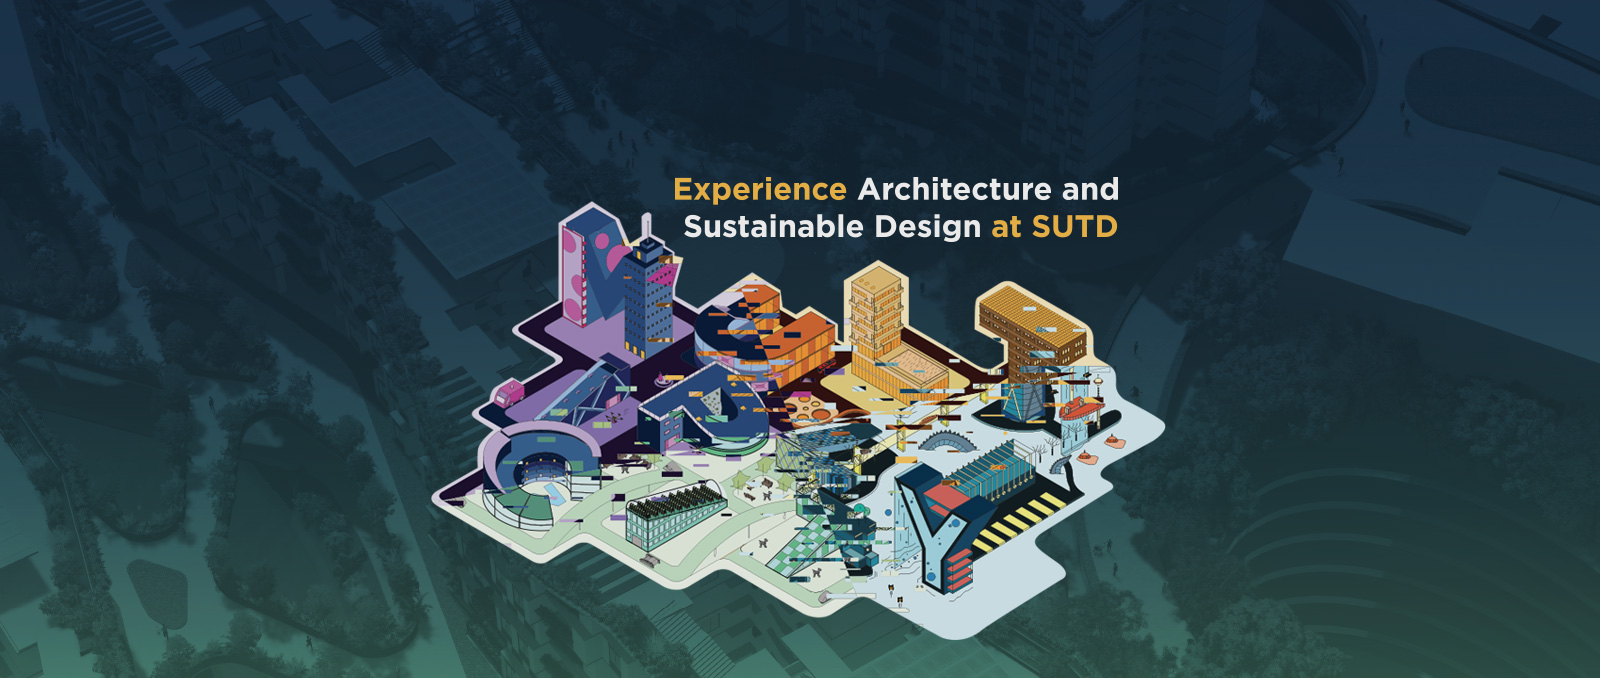 Experience Architecture